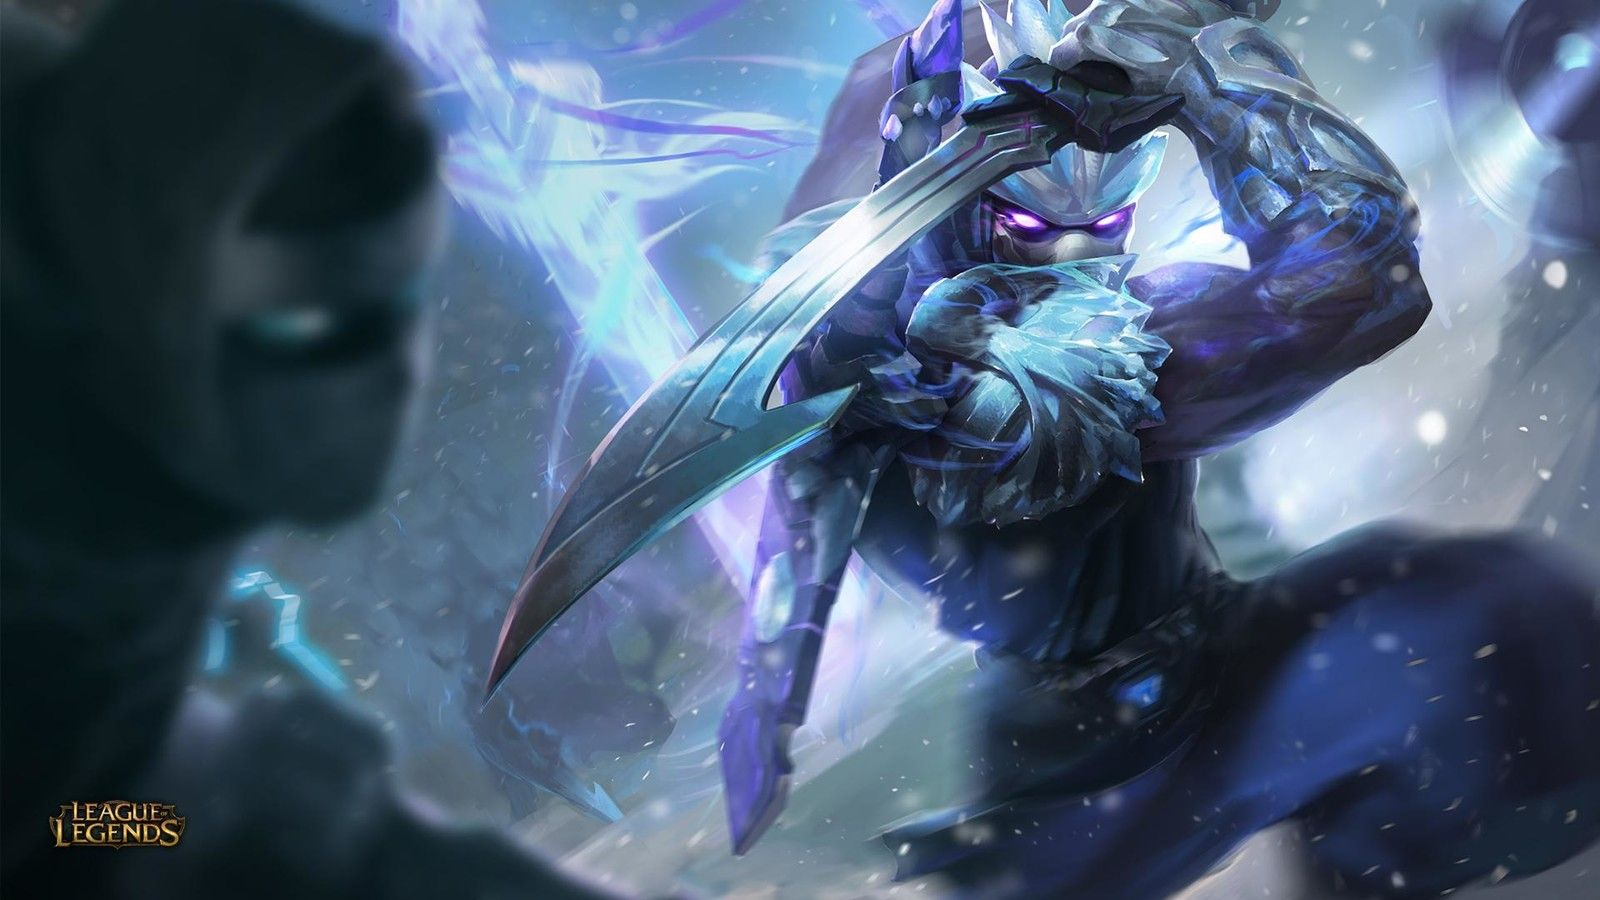 League Of Legends Frozen Shen Splash Art Xi Zhang On Artstation